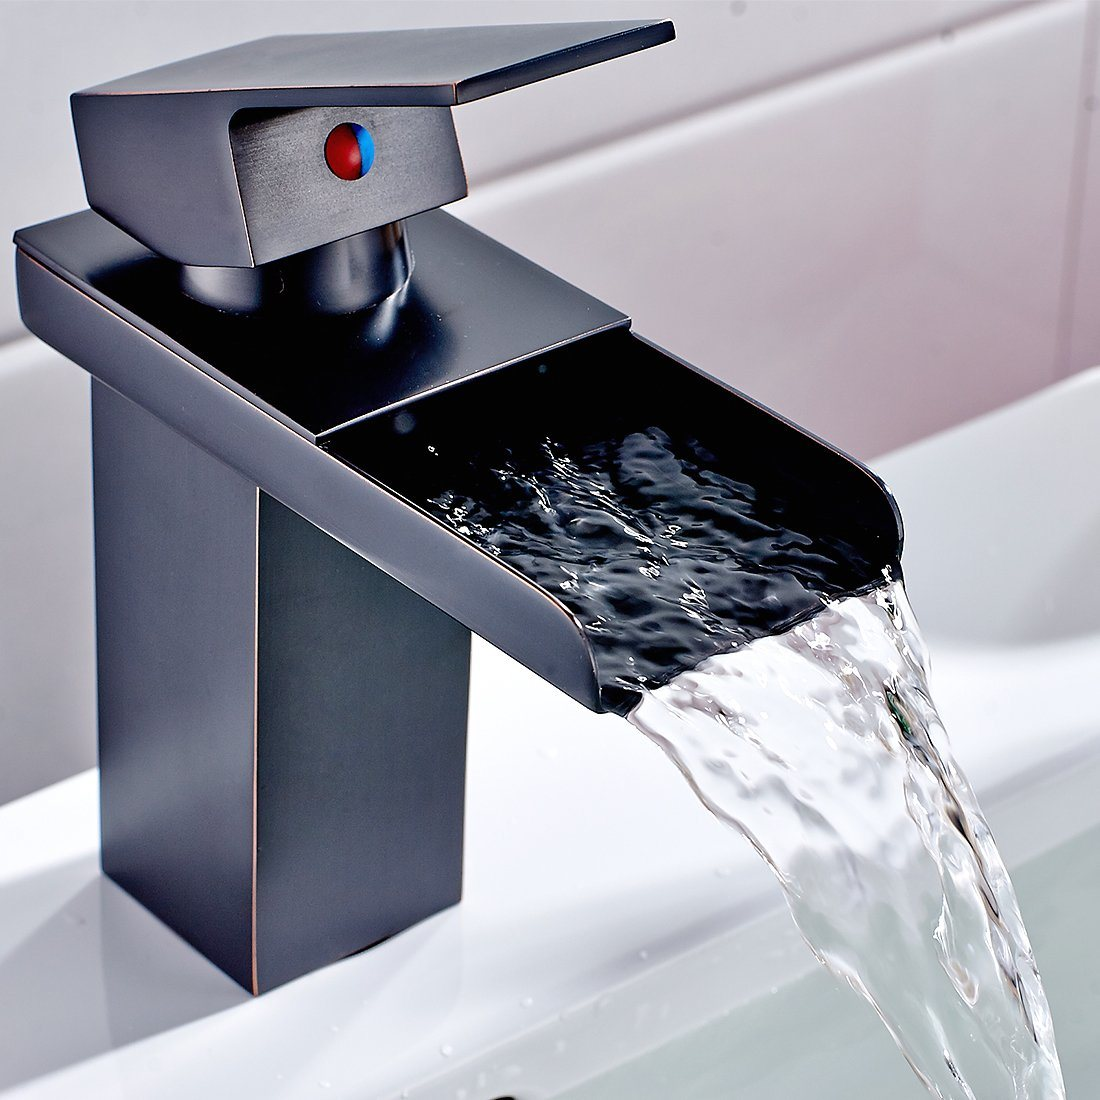 Flg unique sanitaryware basin waterfall bathroom faucet oil rubbed bronze black vessel faucet